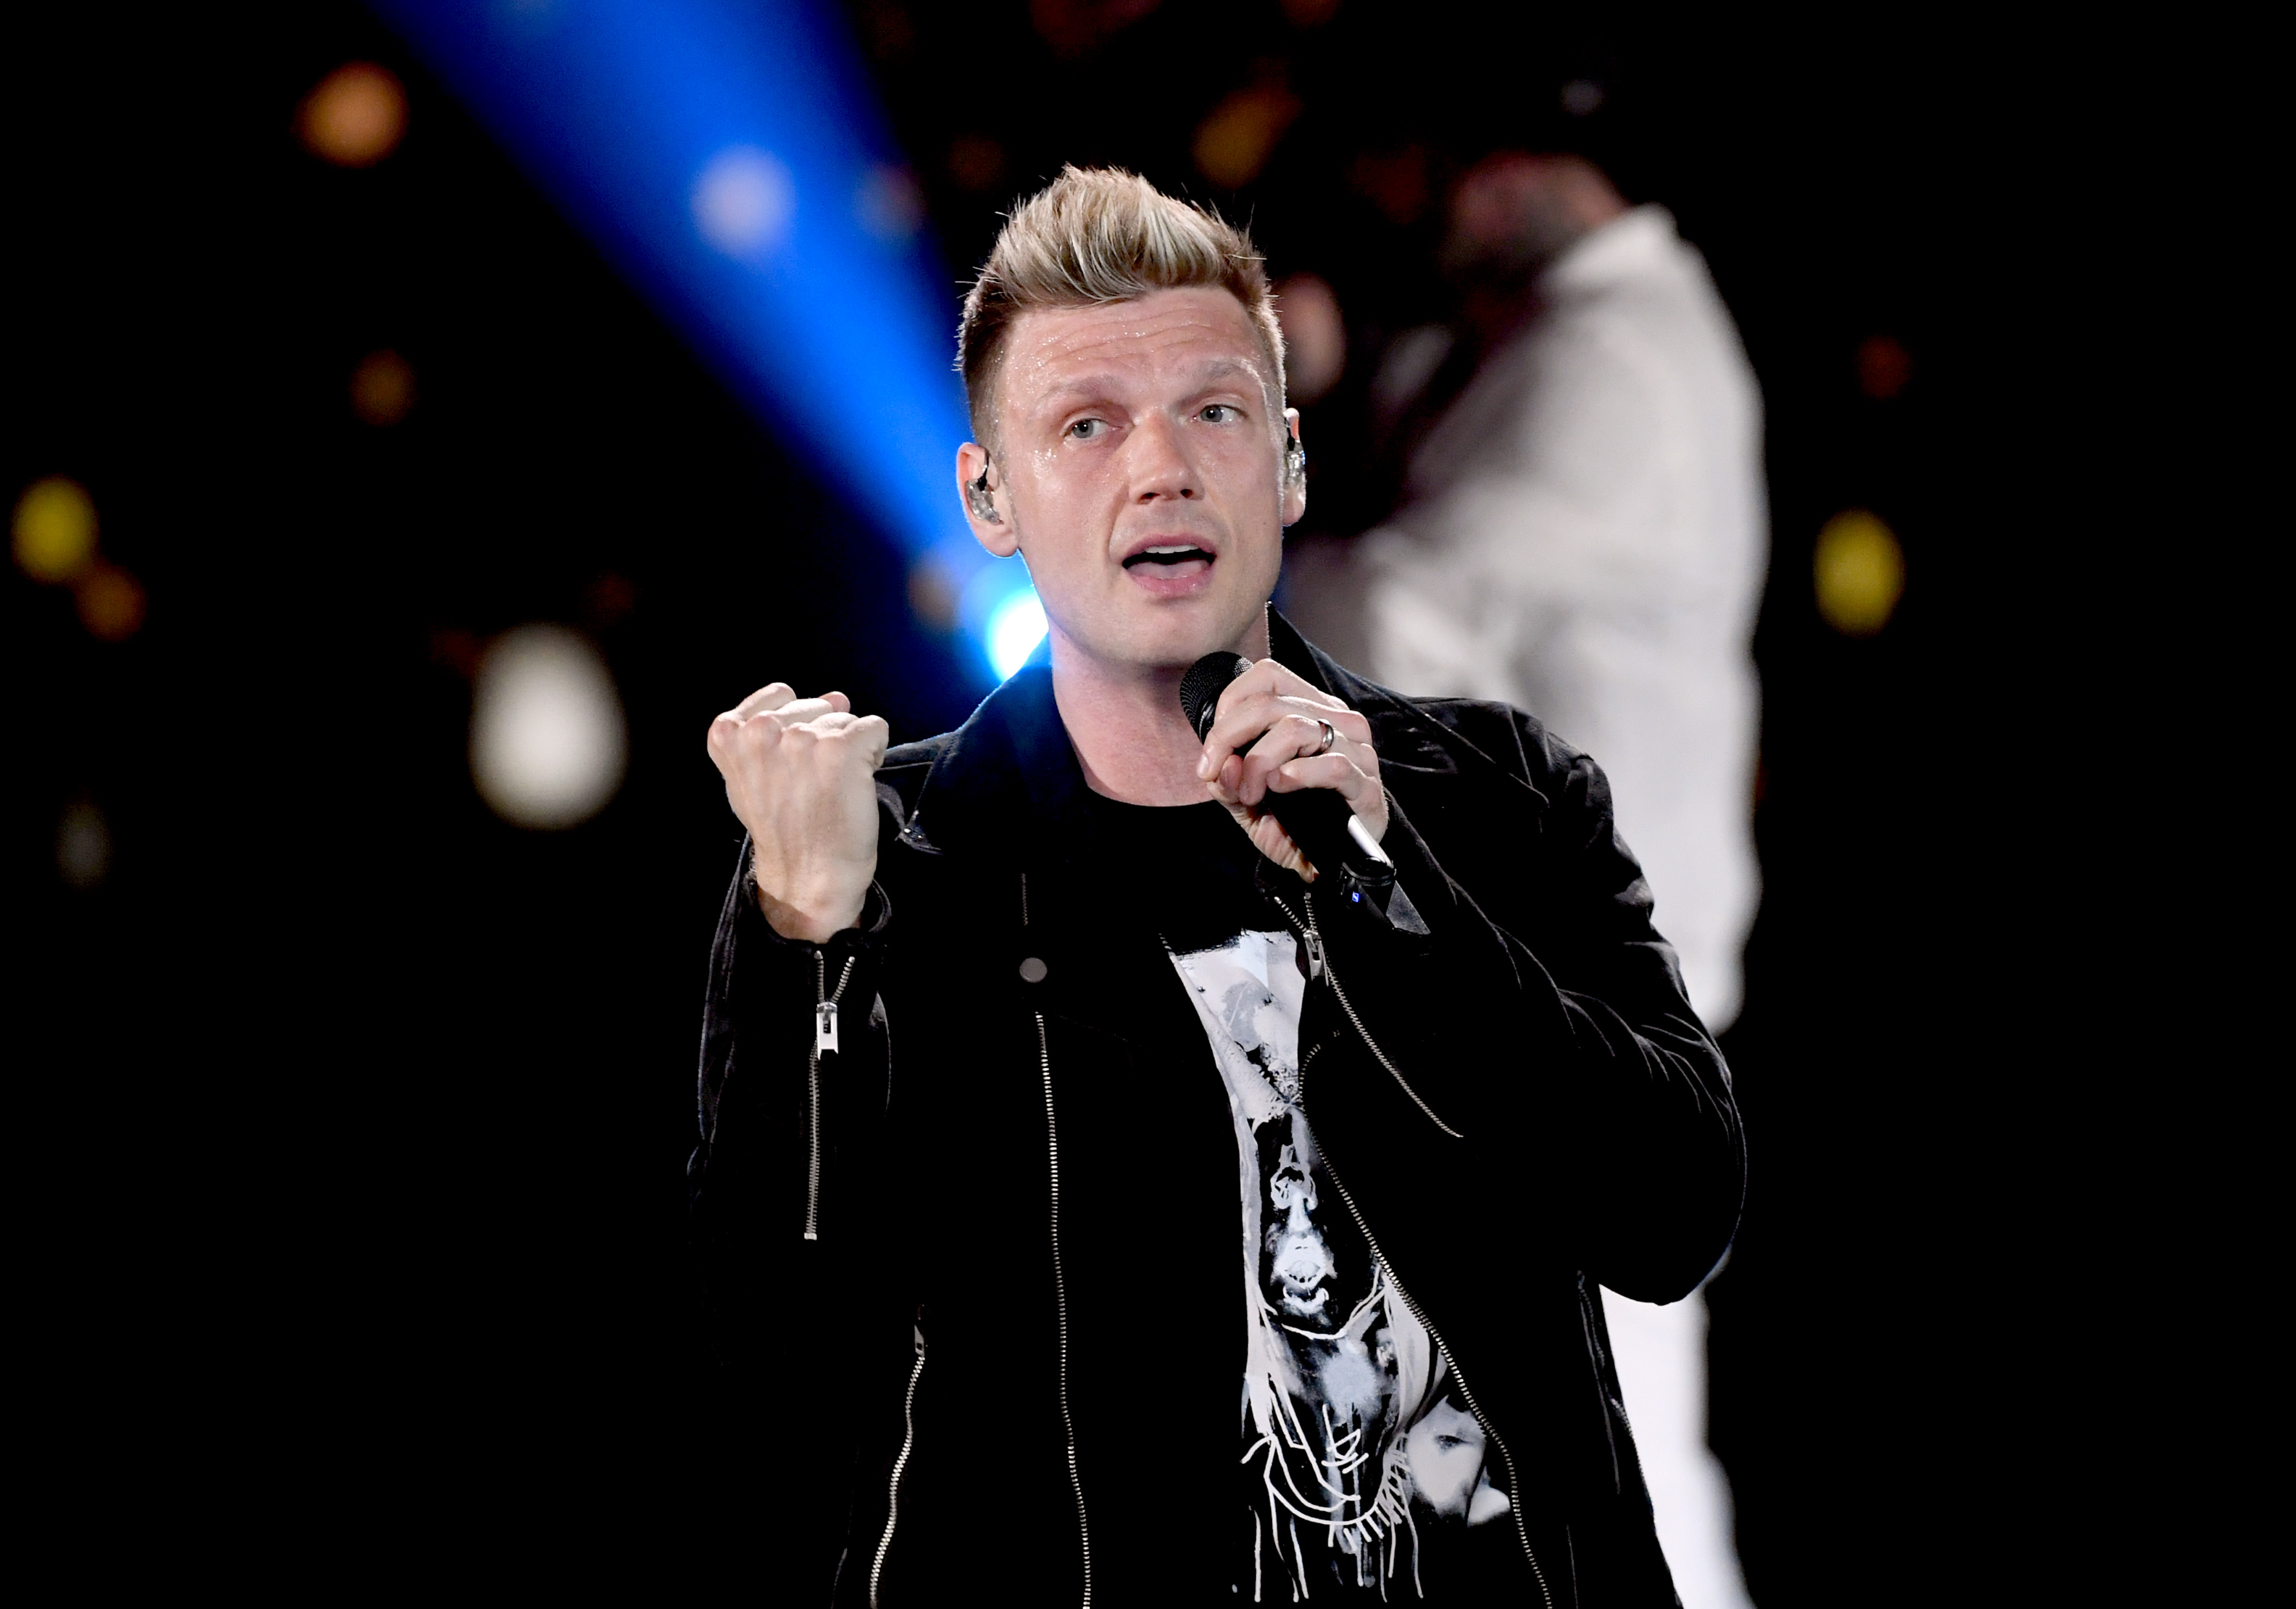 Westlake Legal Group GettyImages-1176065995 Nick Carter reveals name of newborn daughter New York Post Lindsey Kupfer fox-news/person/nick-carter fox-news/entertainment/events/babies fox-news/entertainment/celebrity-news fox-news/entertainment fnc/entertainment fnc e5fd3a05-f745-5cd8-ab80-1ead27544092 article